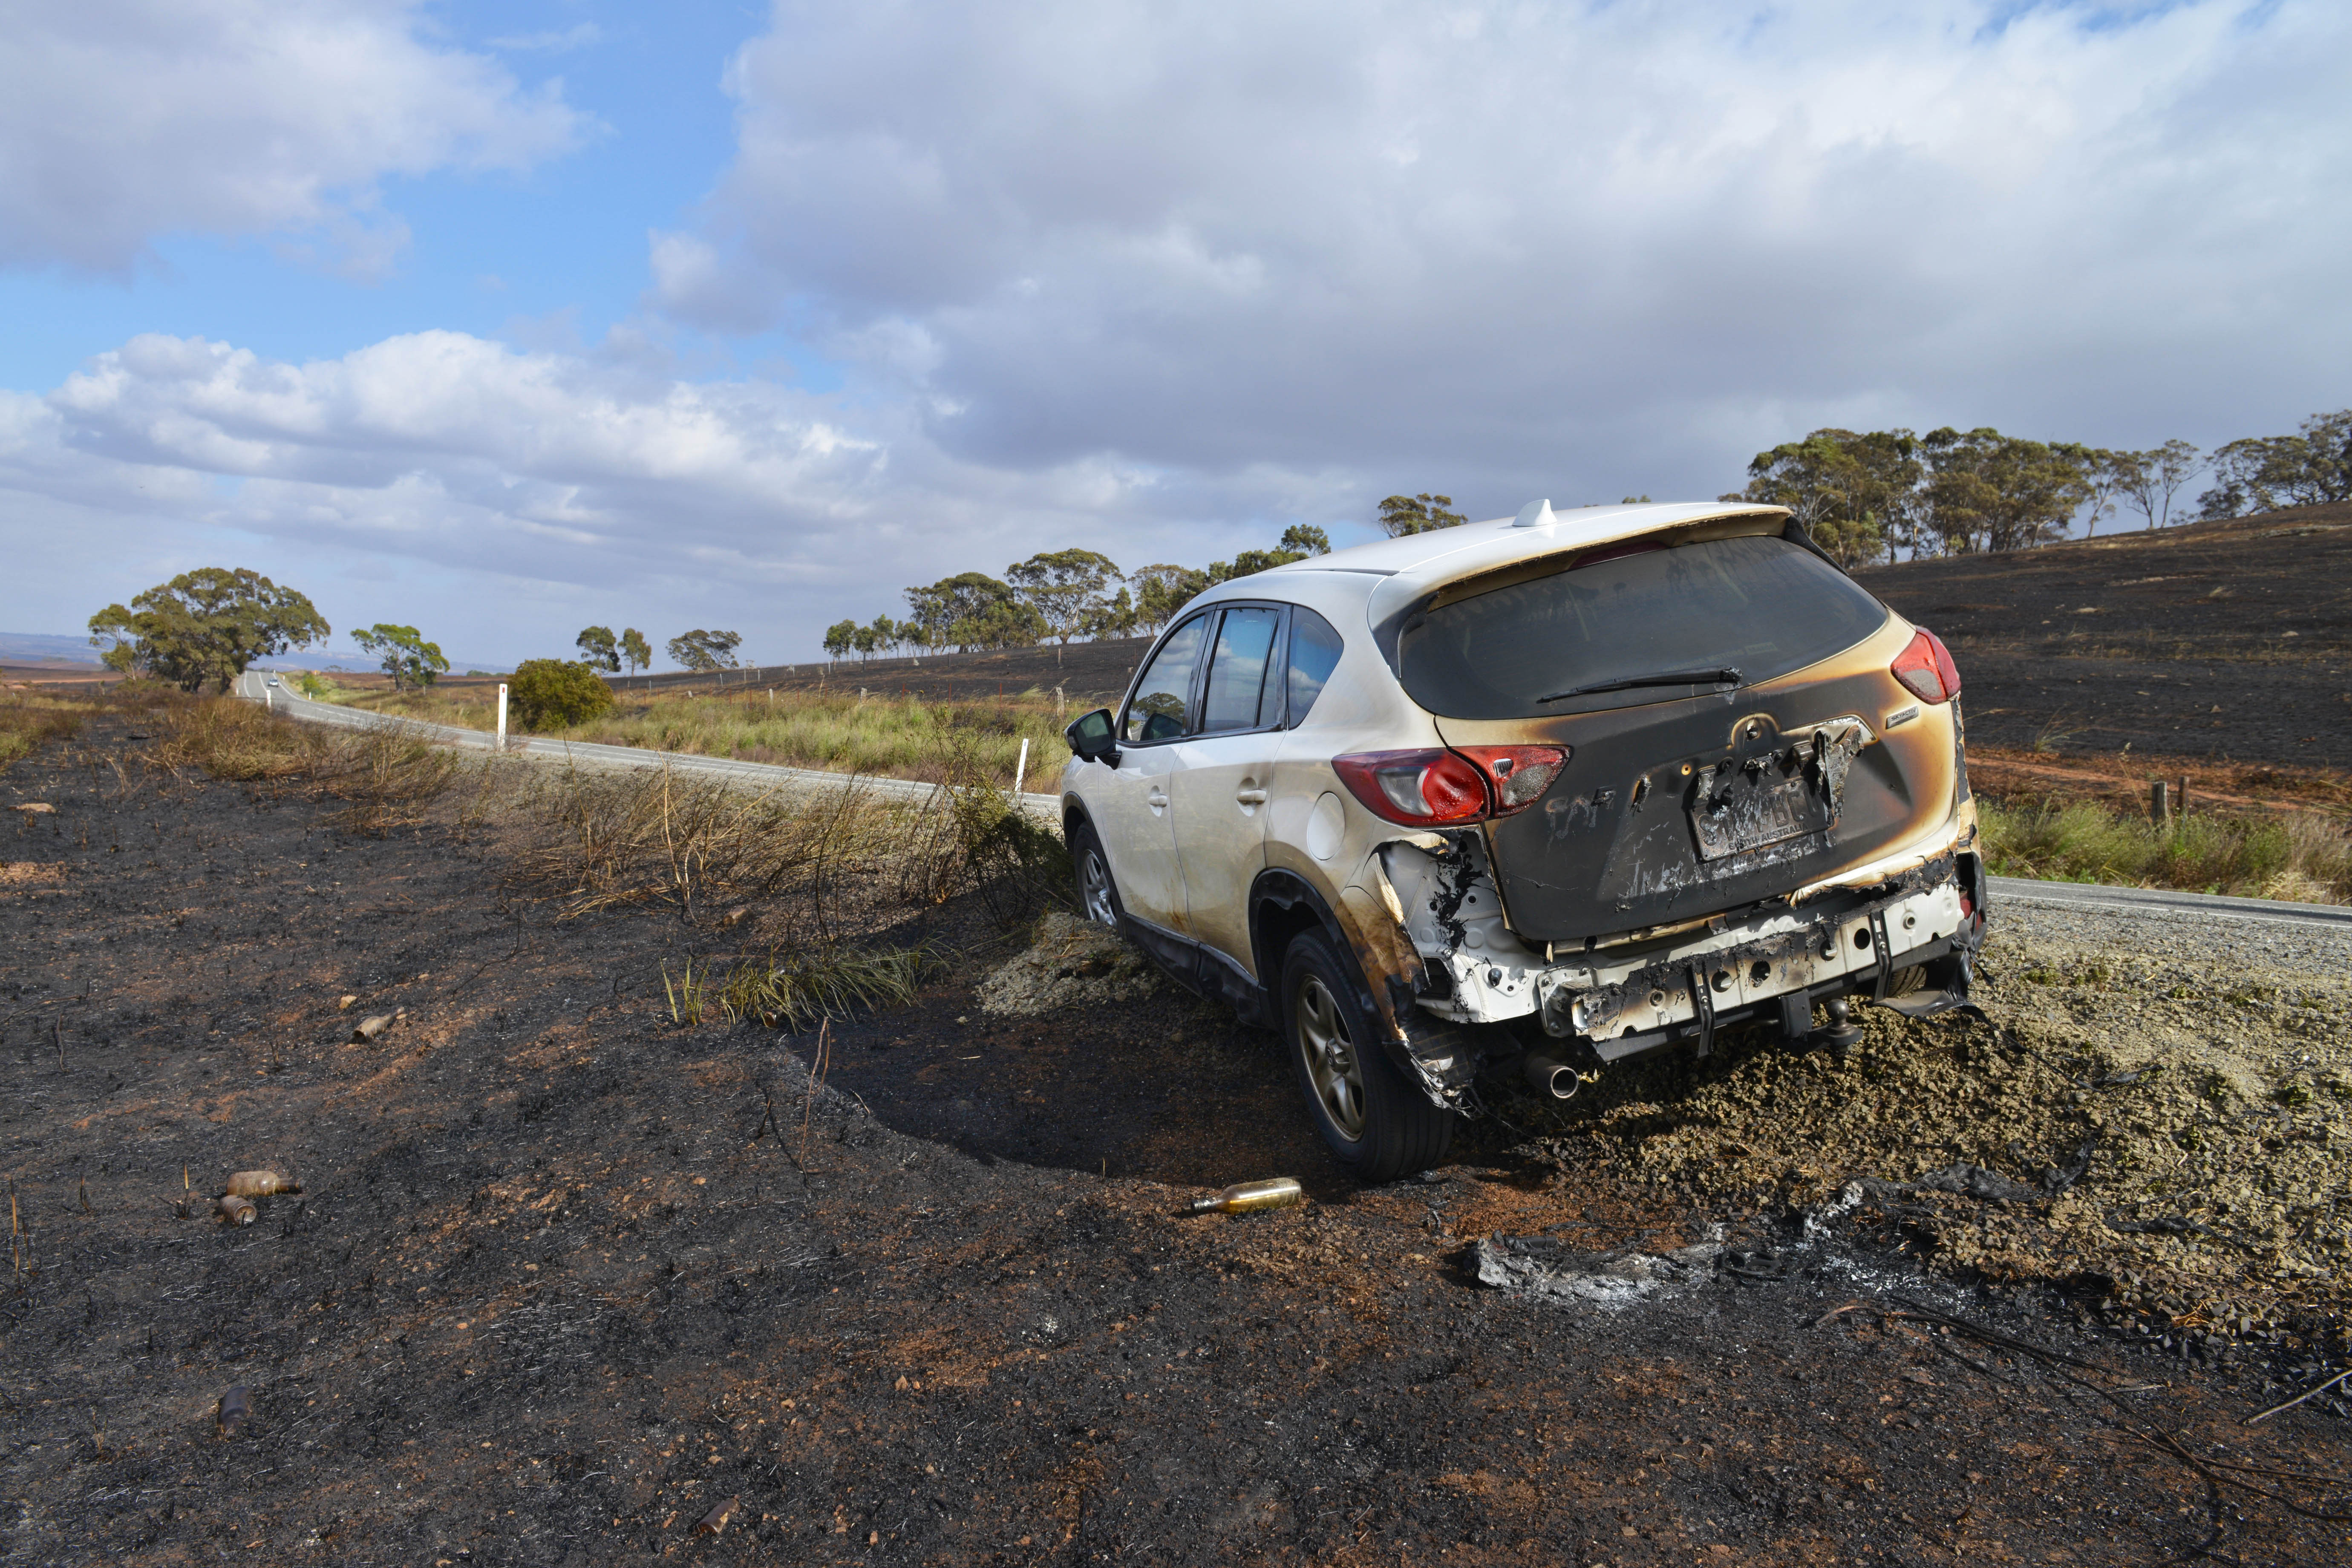 A destroyed car, one of dozens caught in the path of the Pinery fire. AAP Image/Brenton Edwards